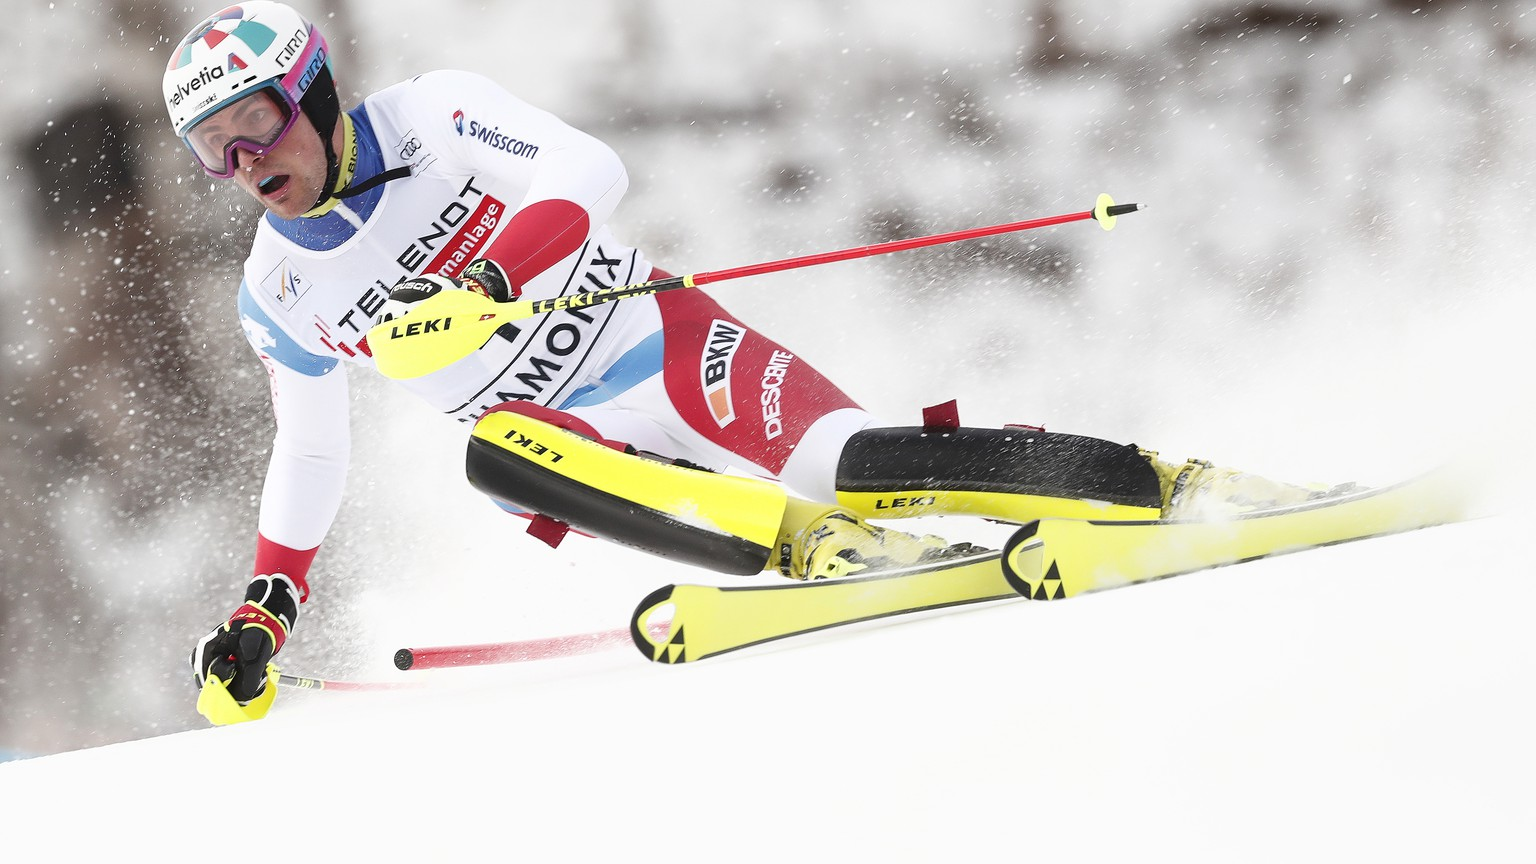 epa08202167 Daniel Yule of Switzerland in action during the first run of the men's Slalom race at the FIS Alpine Skiing World Cup in Les Houches - Chamonix, France, 08 February 2020.  EPA/GUILLAUME HORCAJUELO